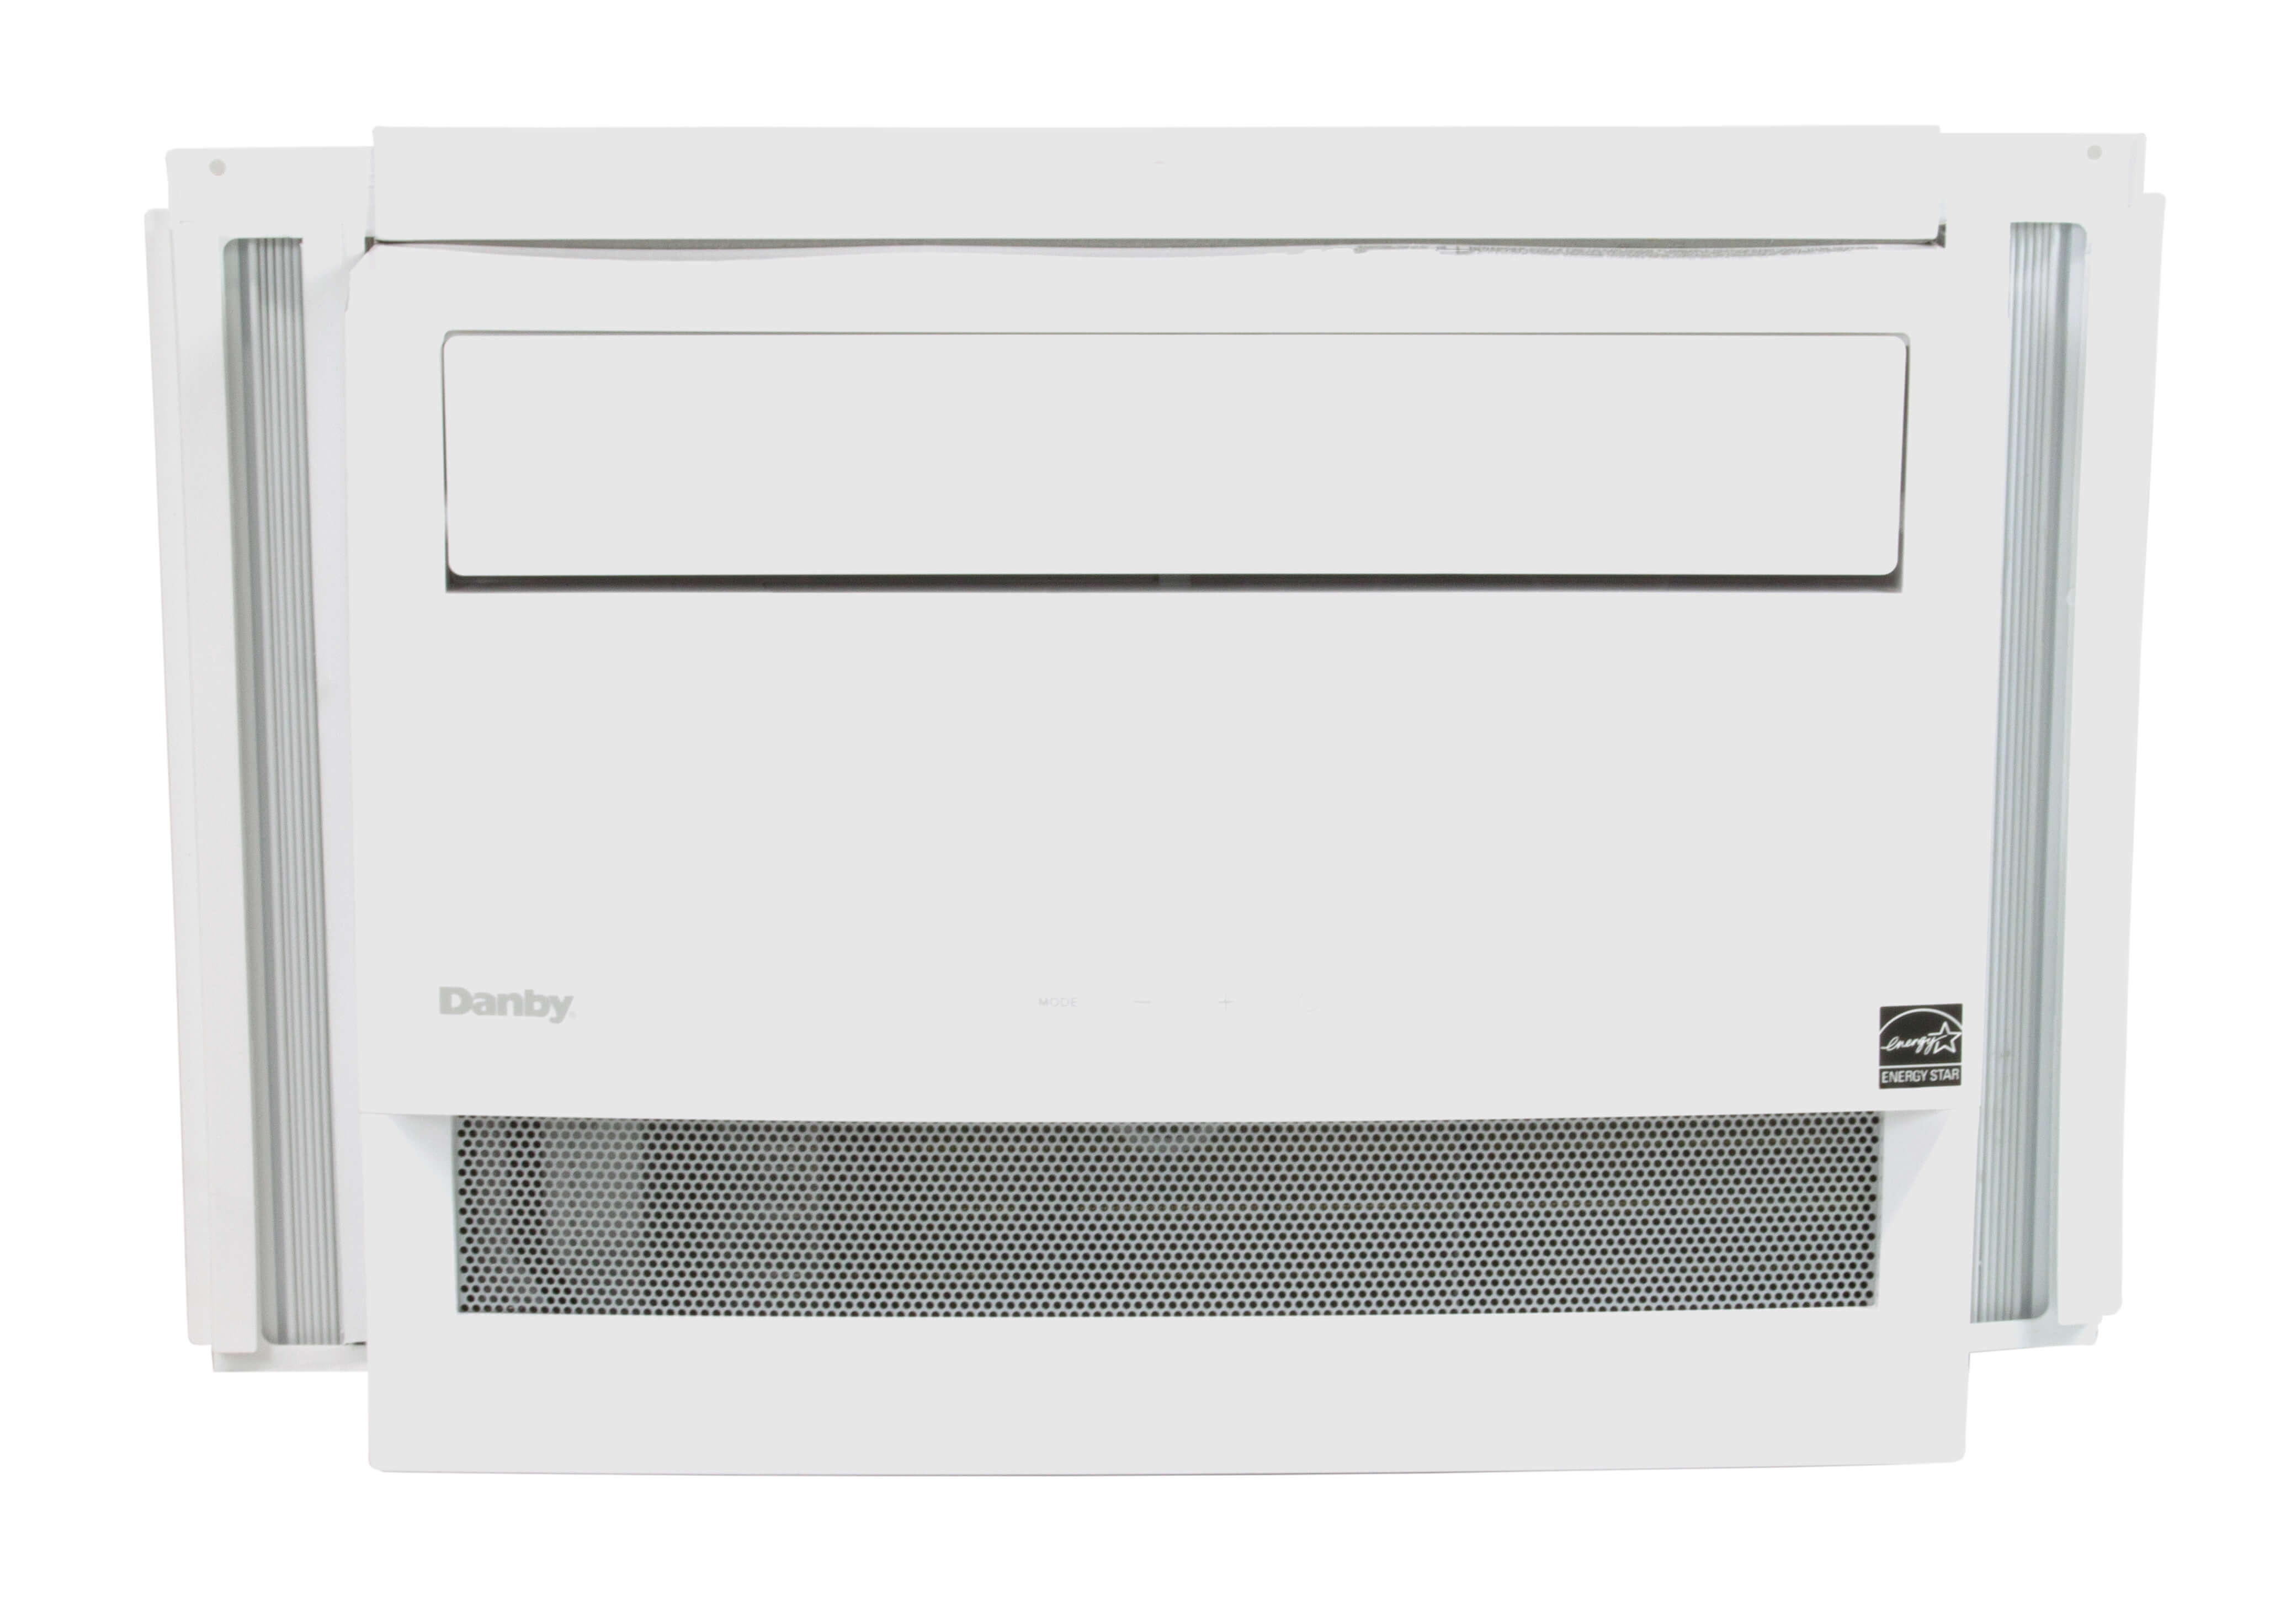 Danby 10,000 BTU Window Air Conditioner with Wireless Connect